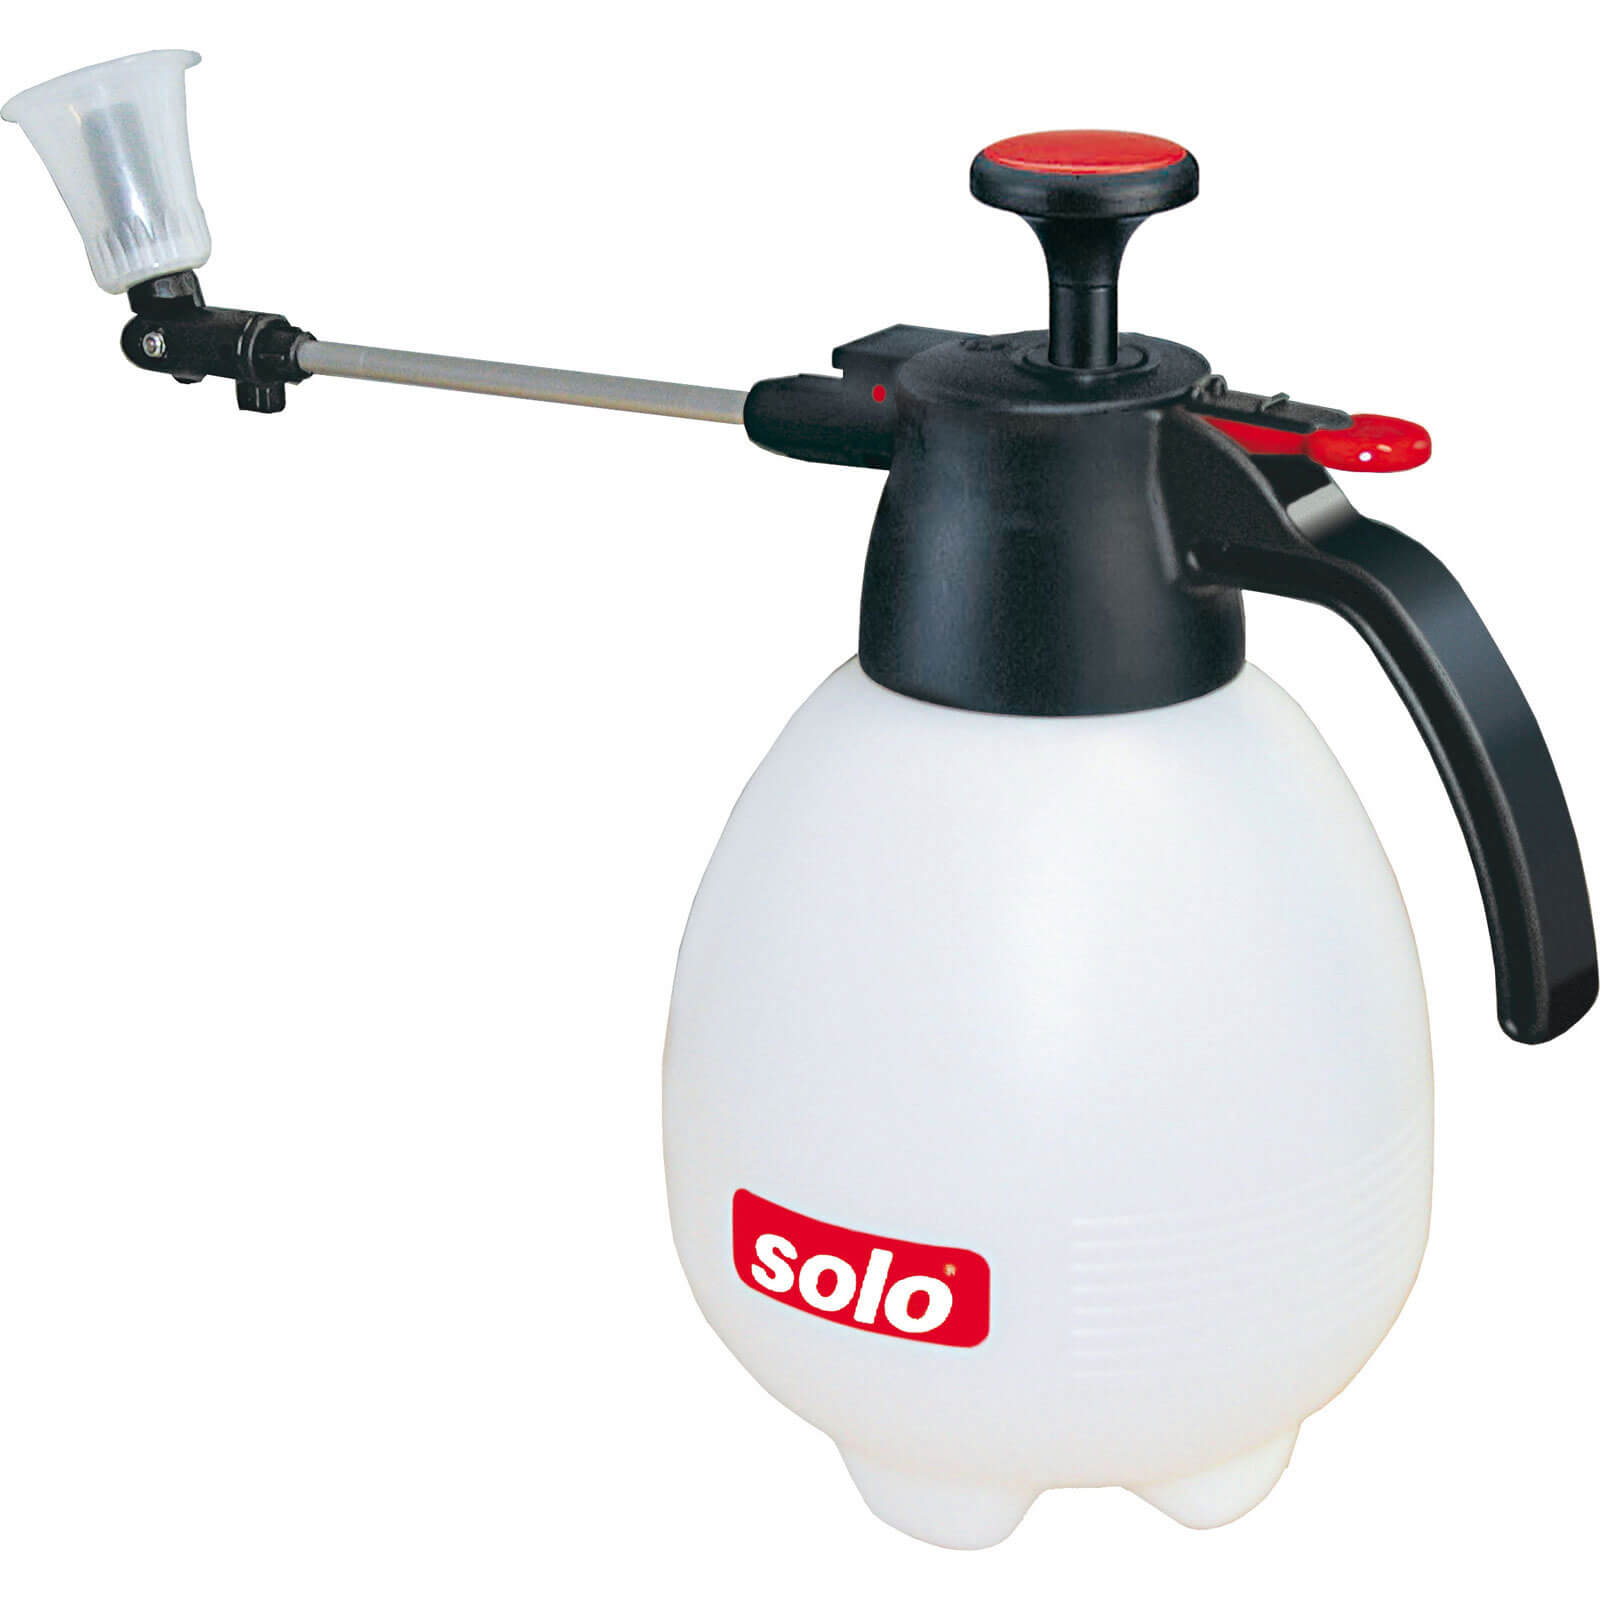 Solo 402 COMFORT Chemical and Water Pressure Sprayer 2l